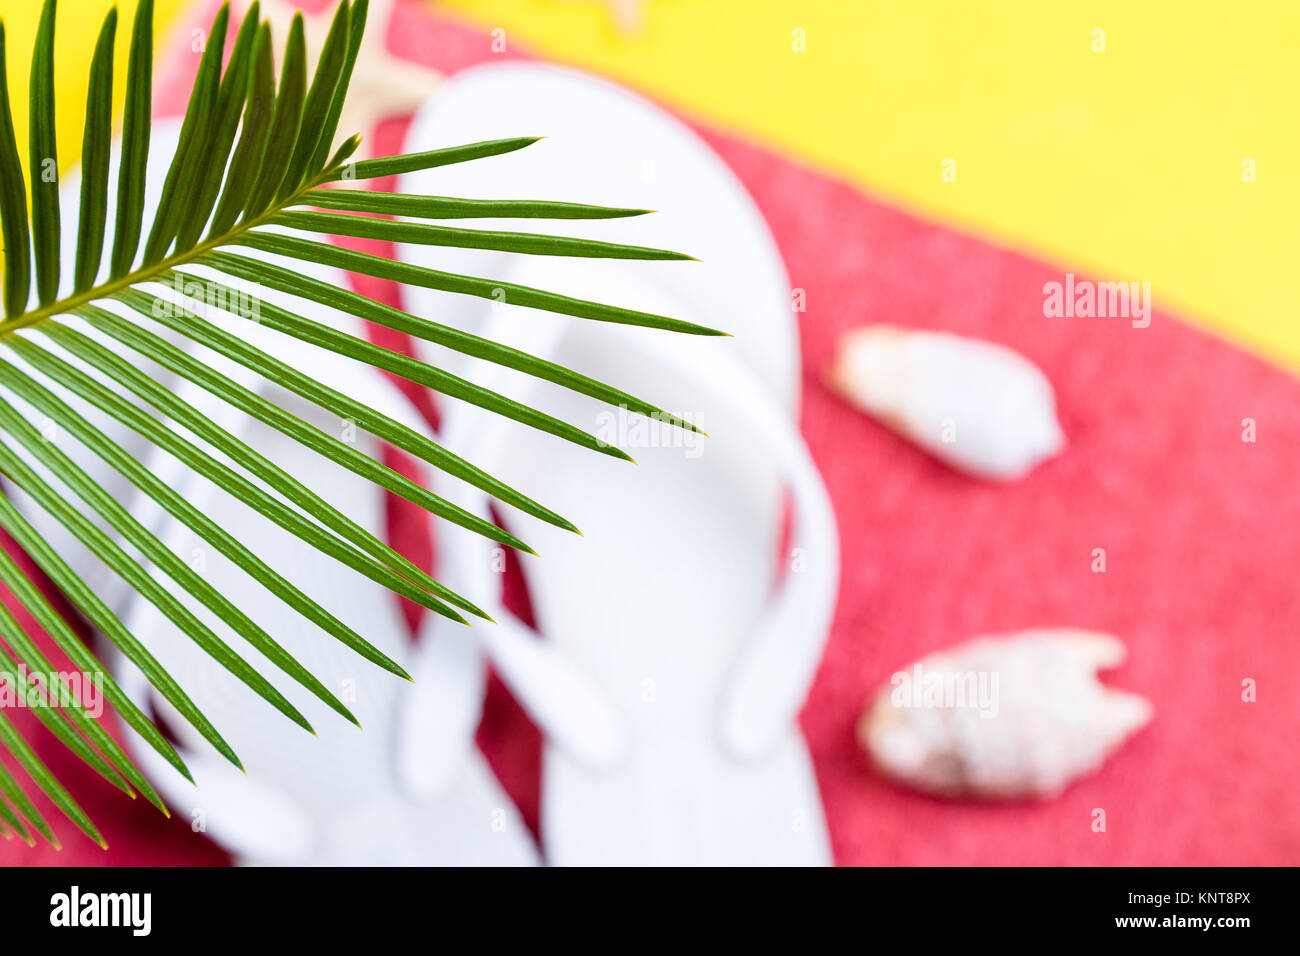 Tropical Background Palm Trees Branches with blurred Set of Woman's Things Accessories to Beach Season - Stock Image